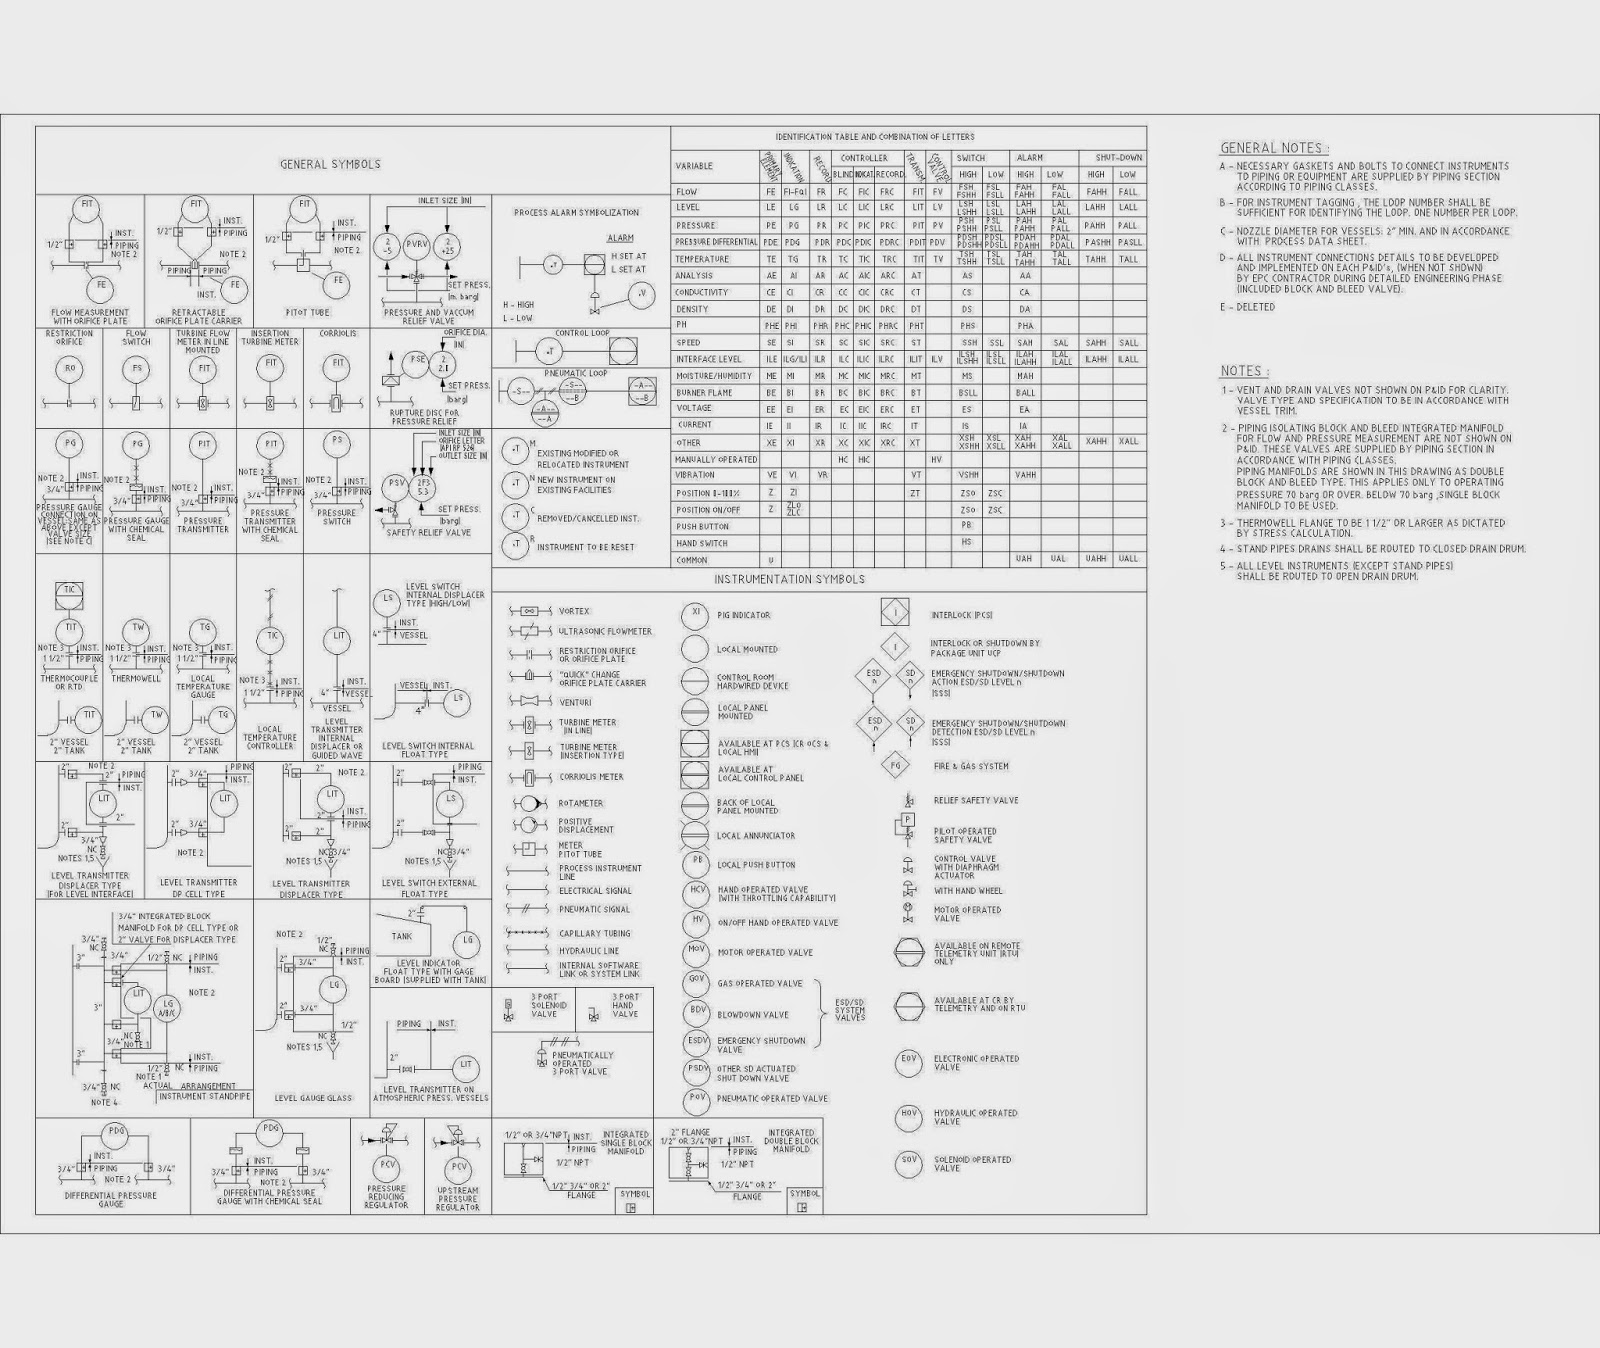 r land baidin egwar  st  piping  u0026 instrumentation diagram symbols